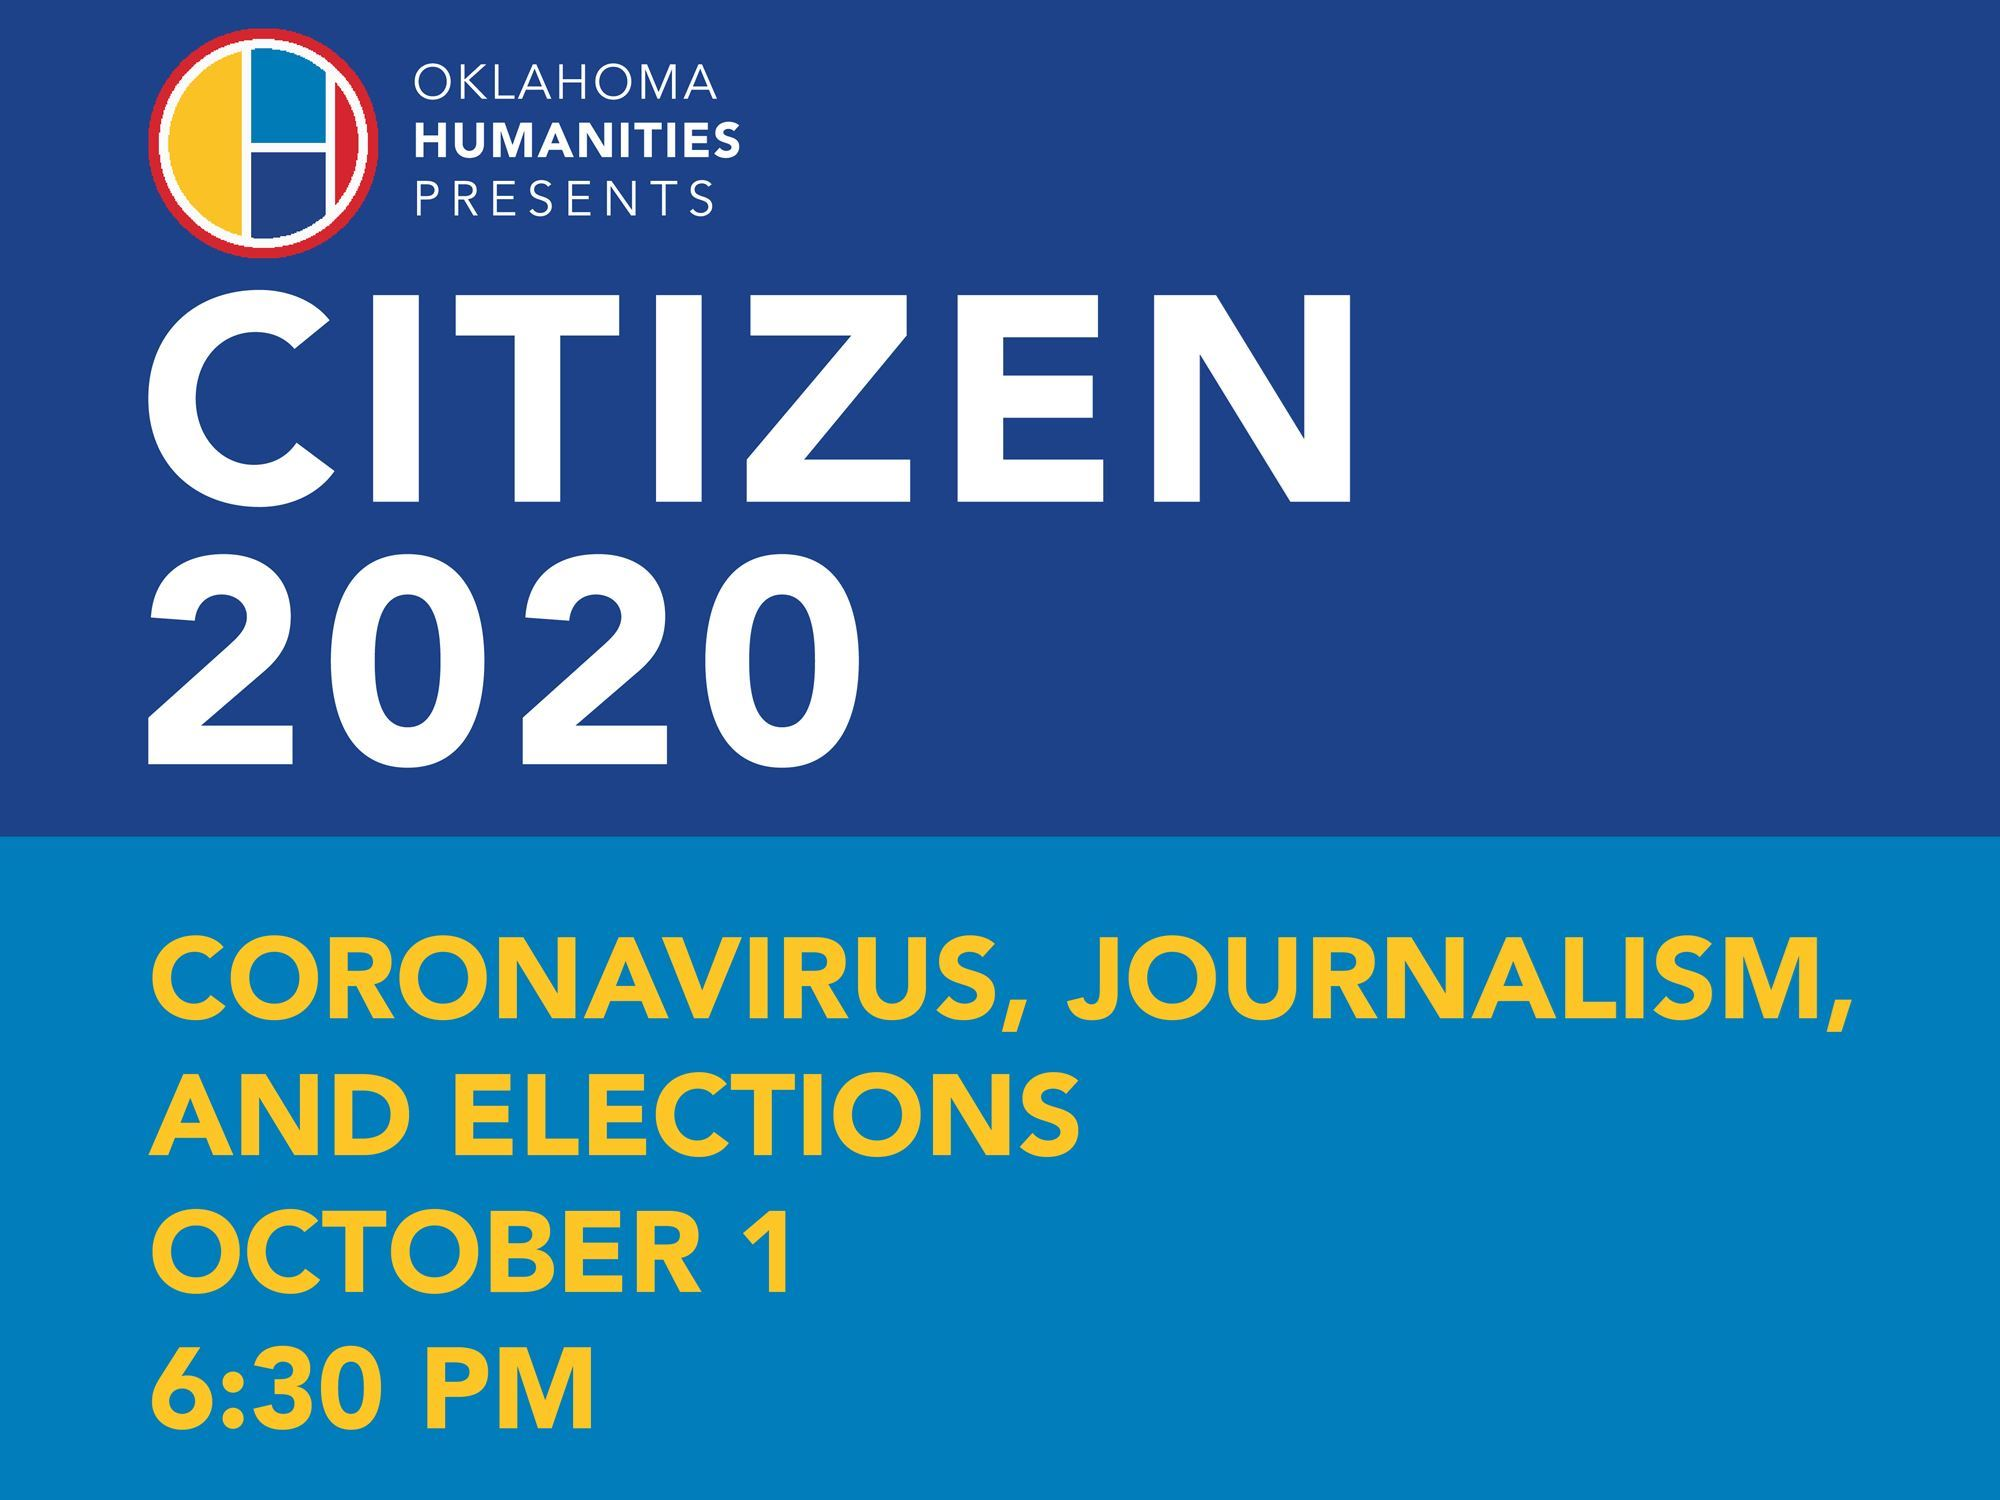 Citizen 2020 - Coronavirus, Journalism and Elections Oct 1 event